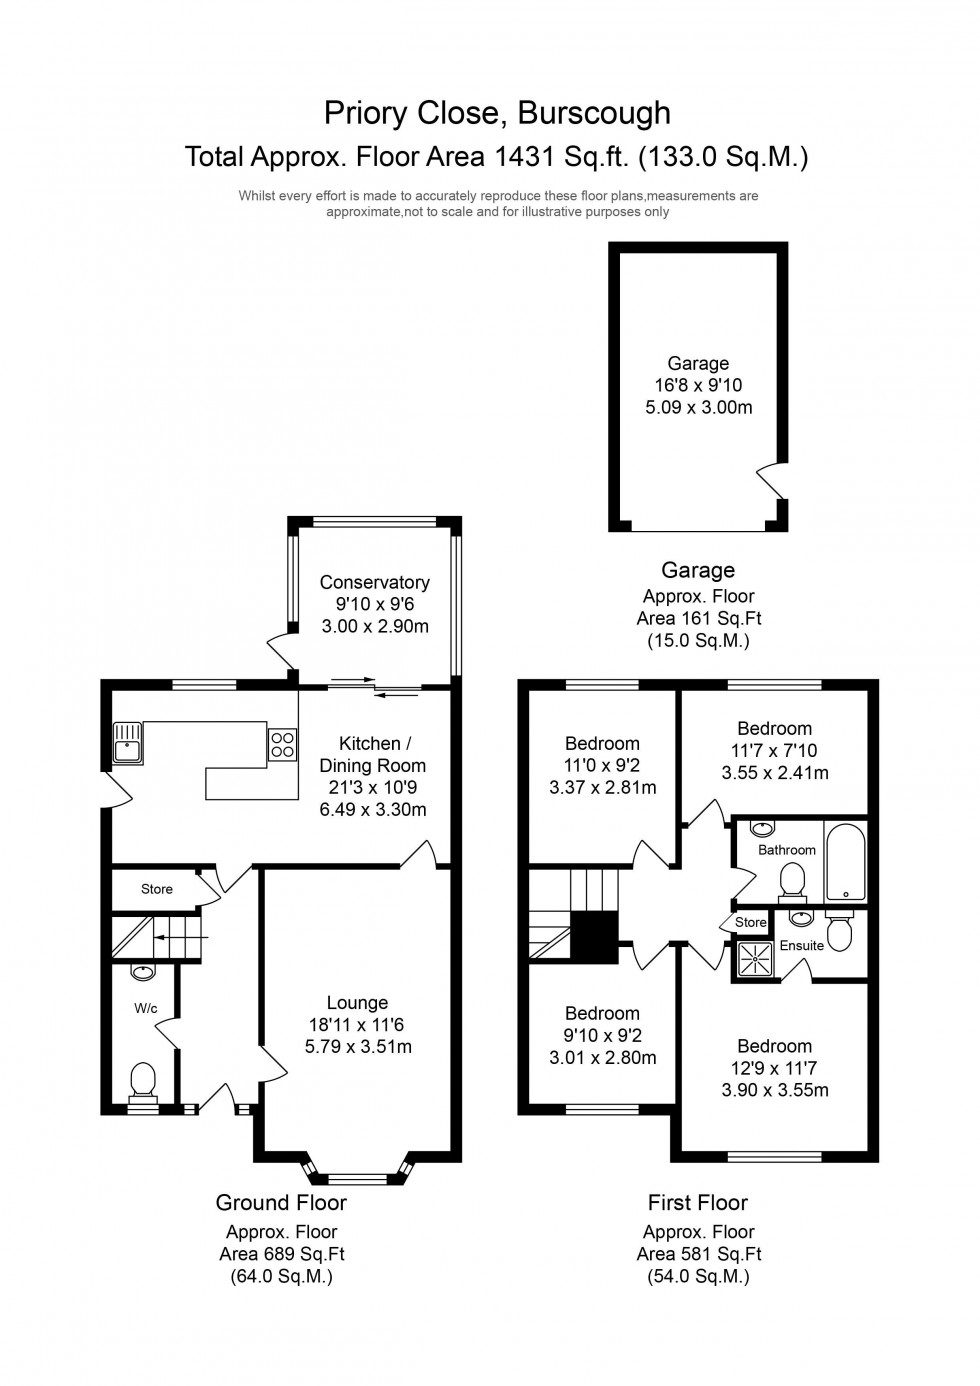 Floorplan for Priory Close, Burscough